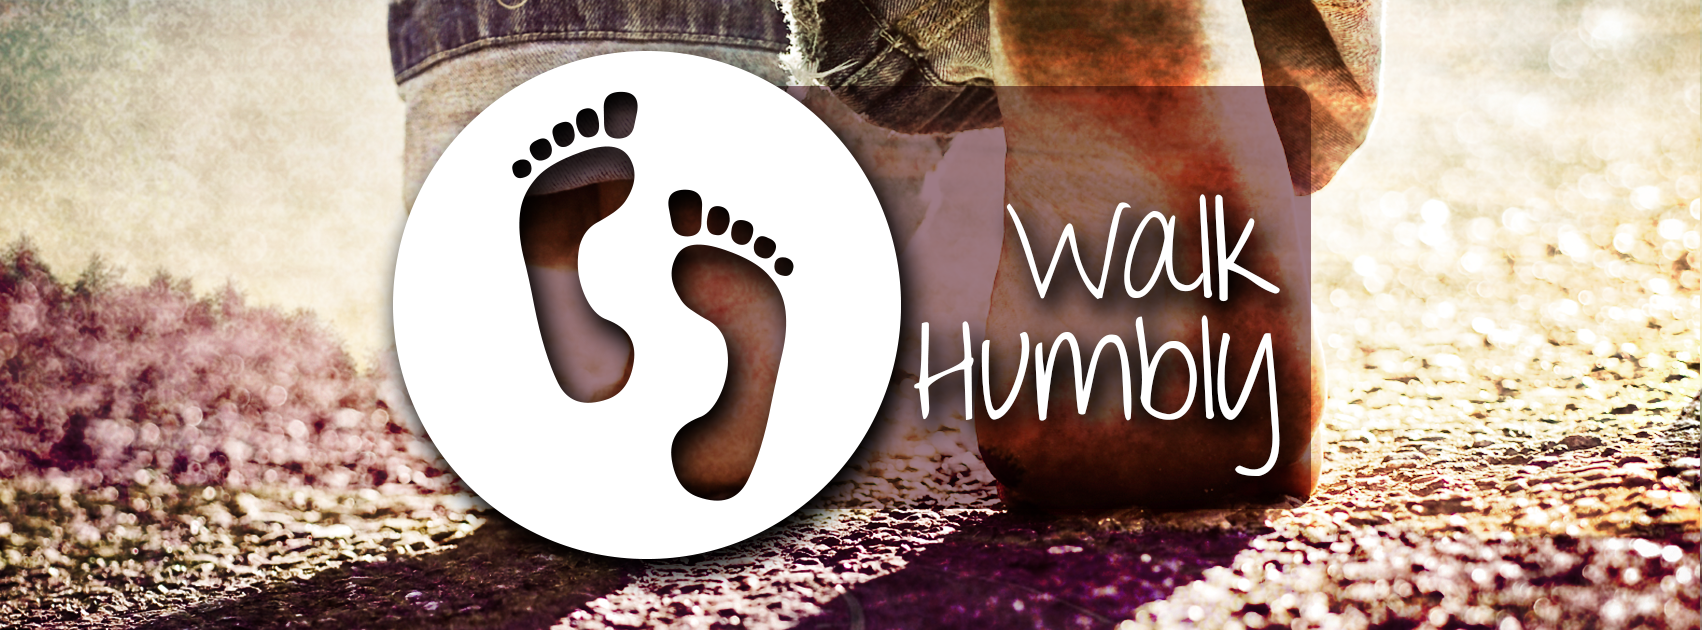 Walk Humbly, Part 1: Your Identity